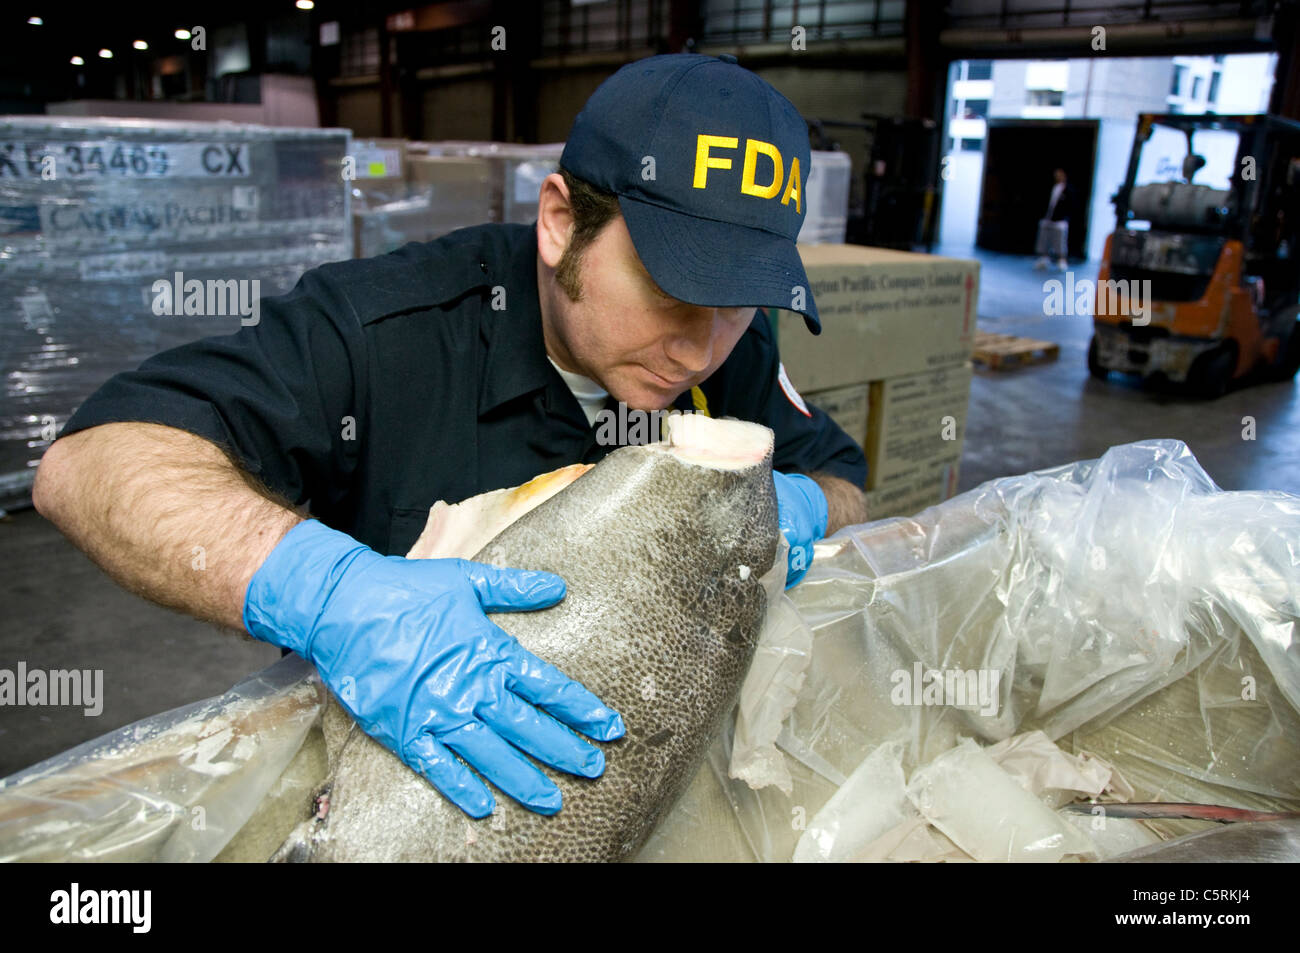 FDA field inspectors check shipments of imported seafood at the Los Angeles International Airport. - Stock Image